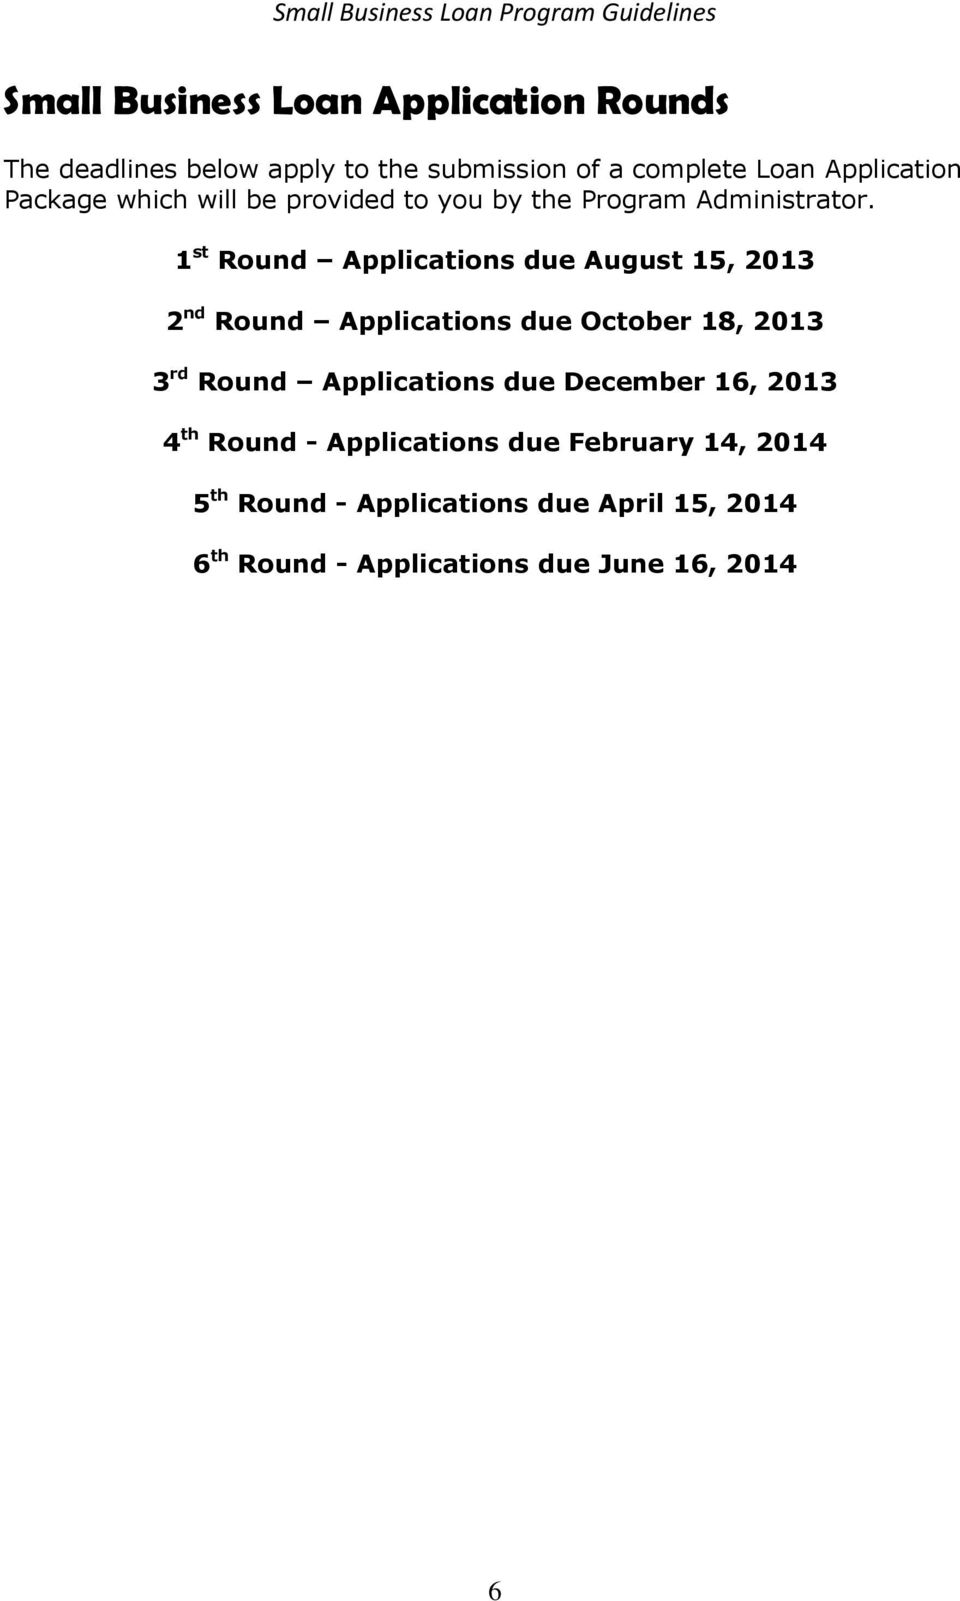 1 st Round Applications due August 15, 2013 2 nd Round Applications due October 18, 2013 3 rd Round Applications